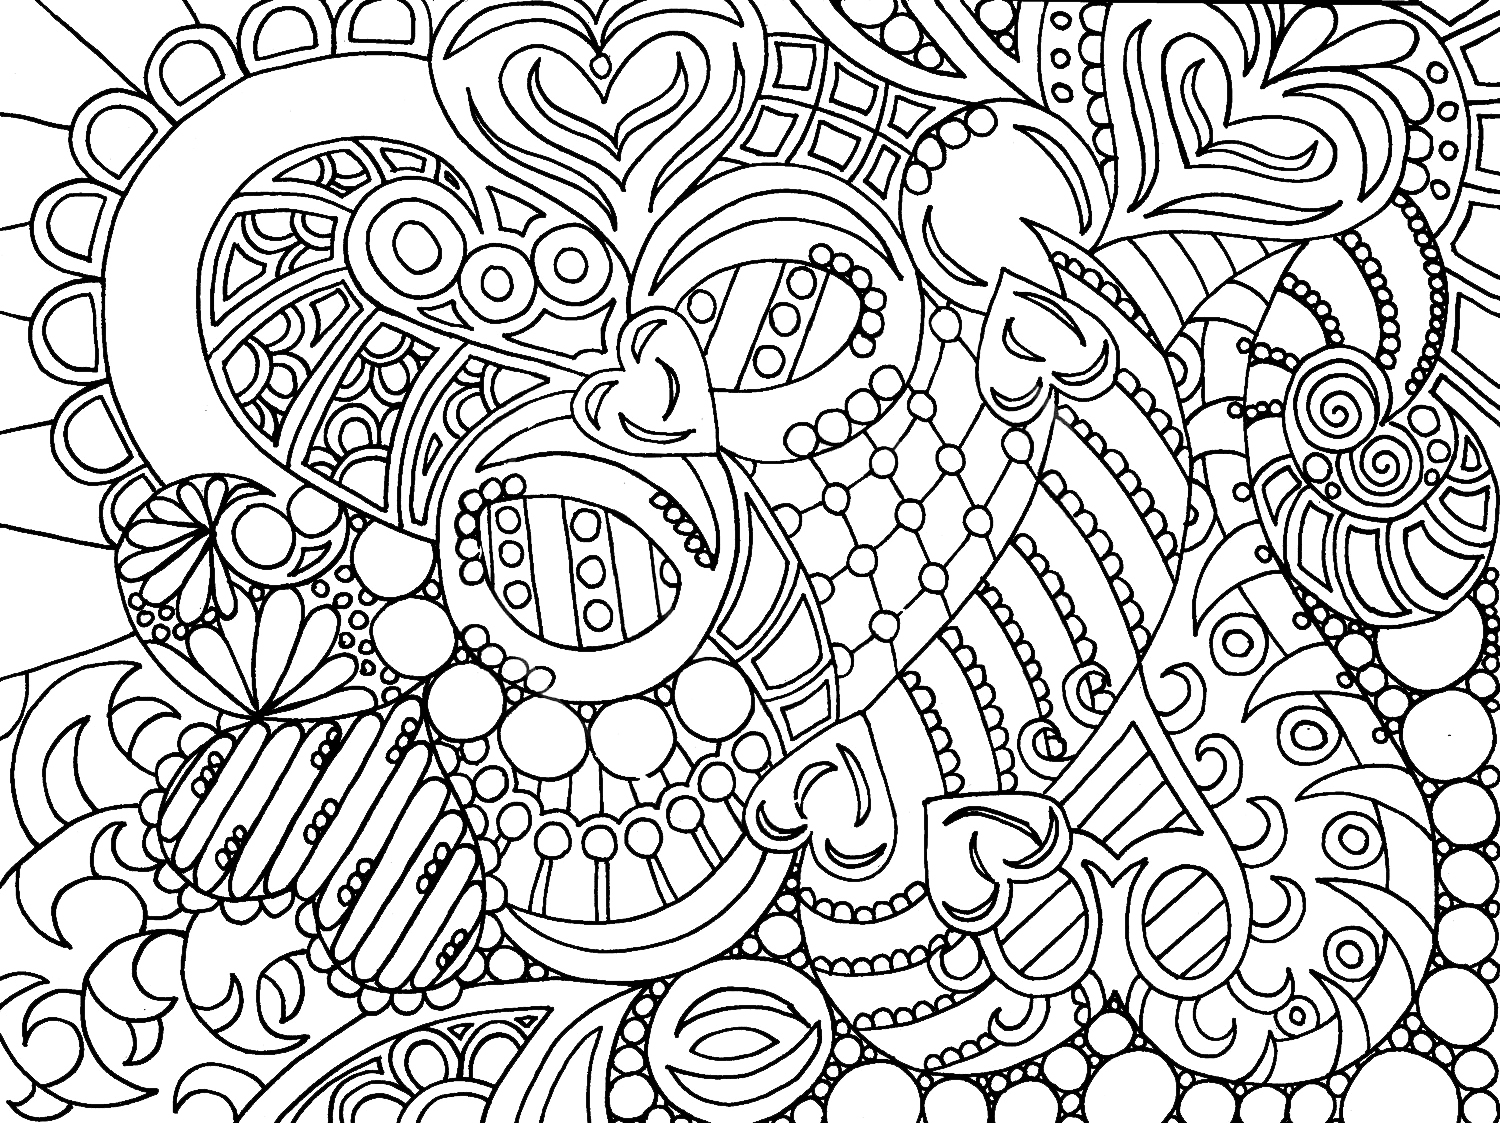 Free coloring pages for adults only coloring pages for Coloring pages